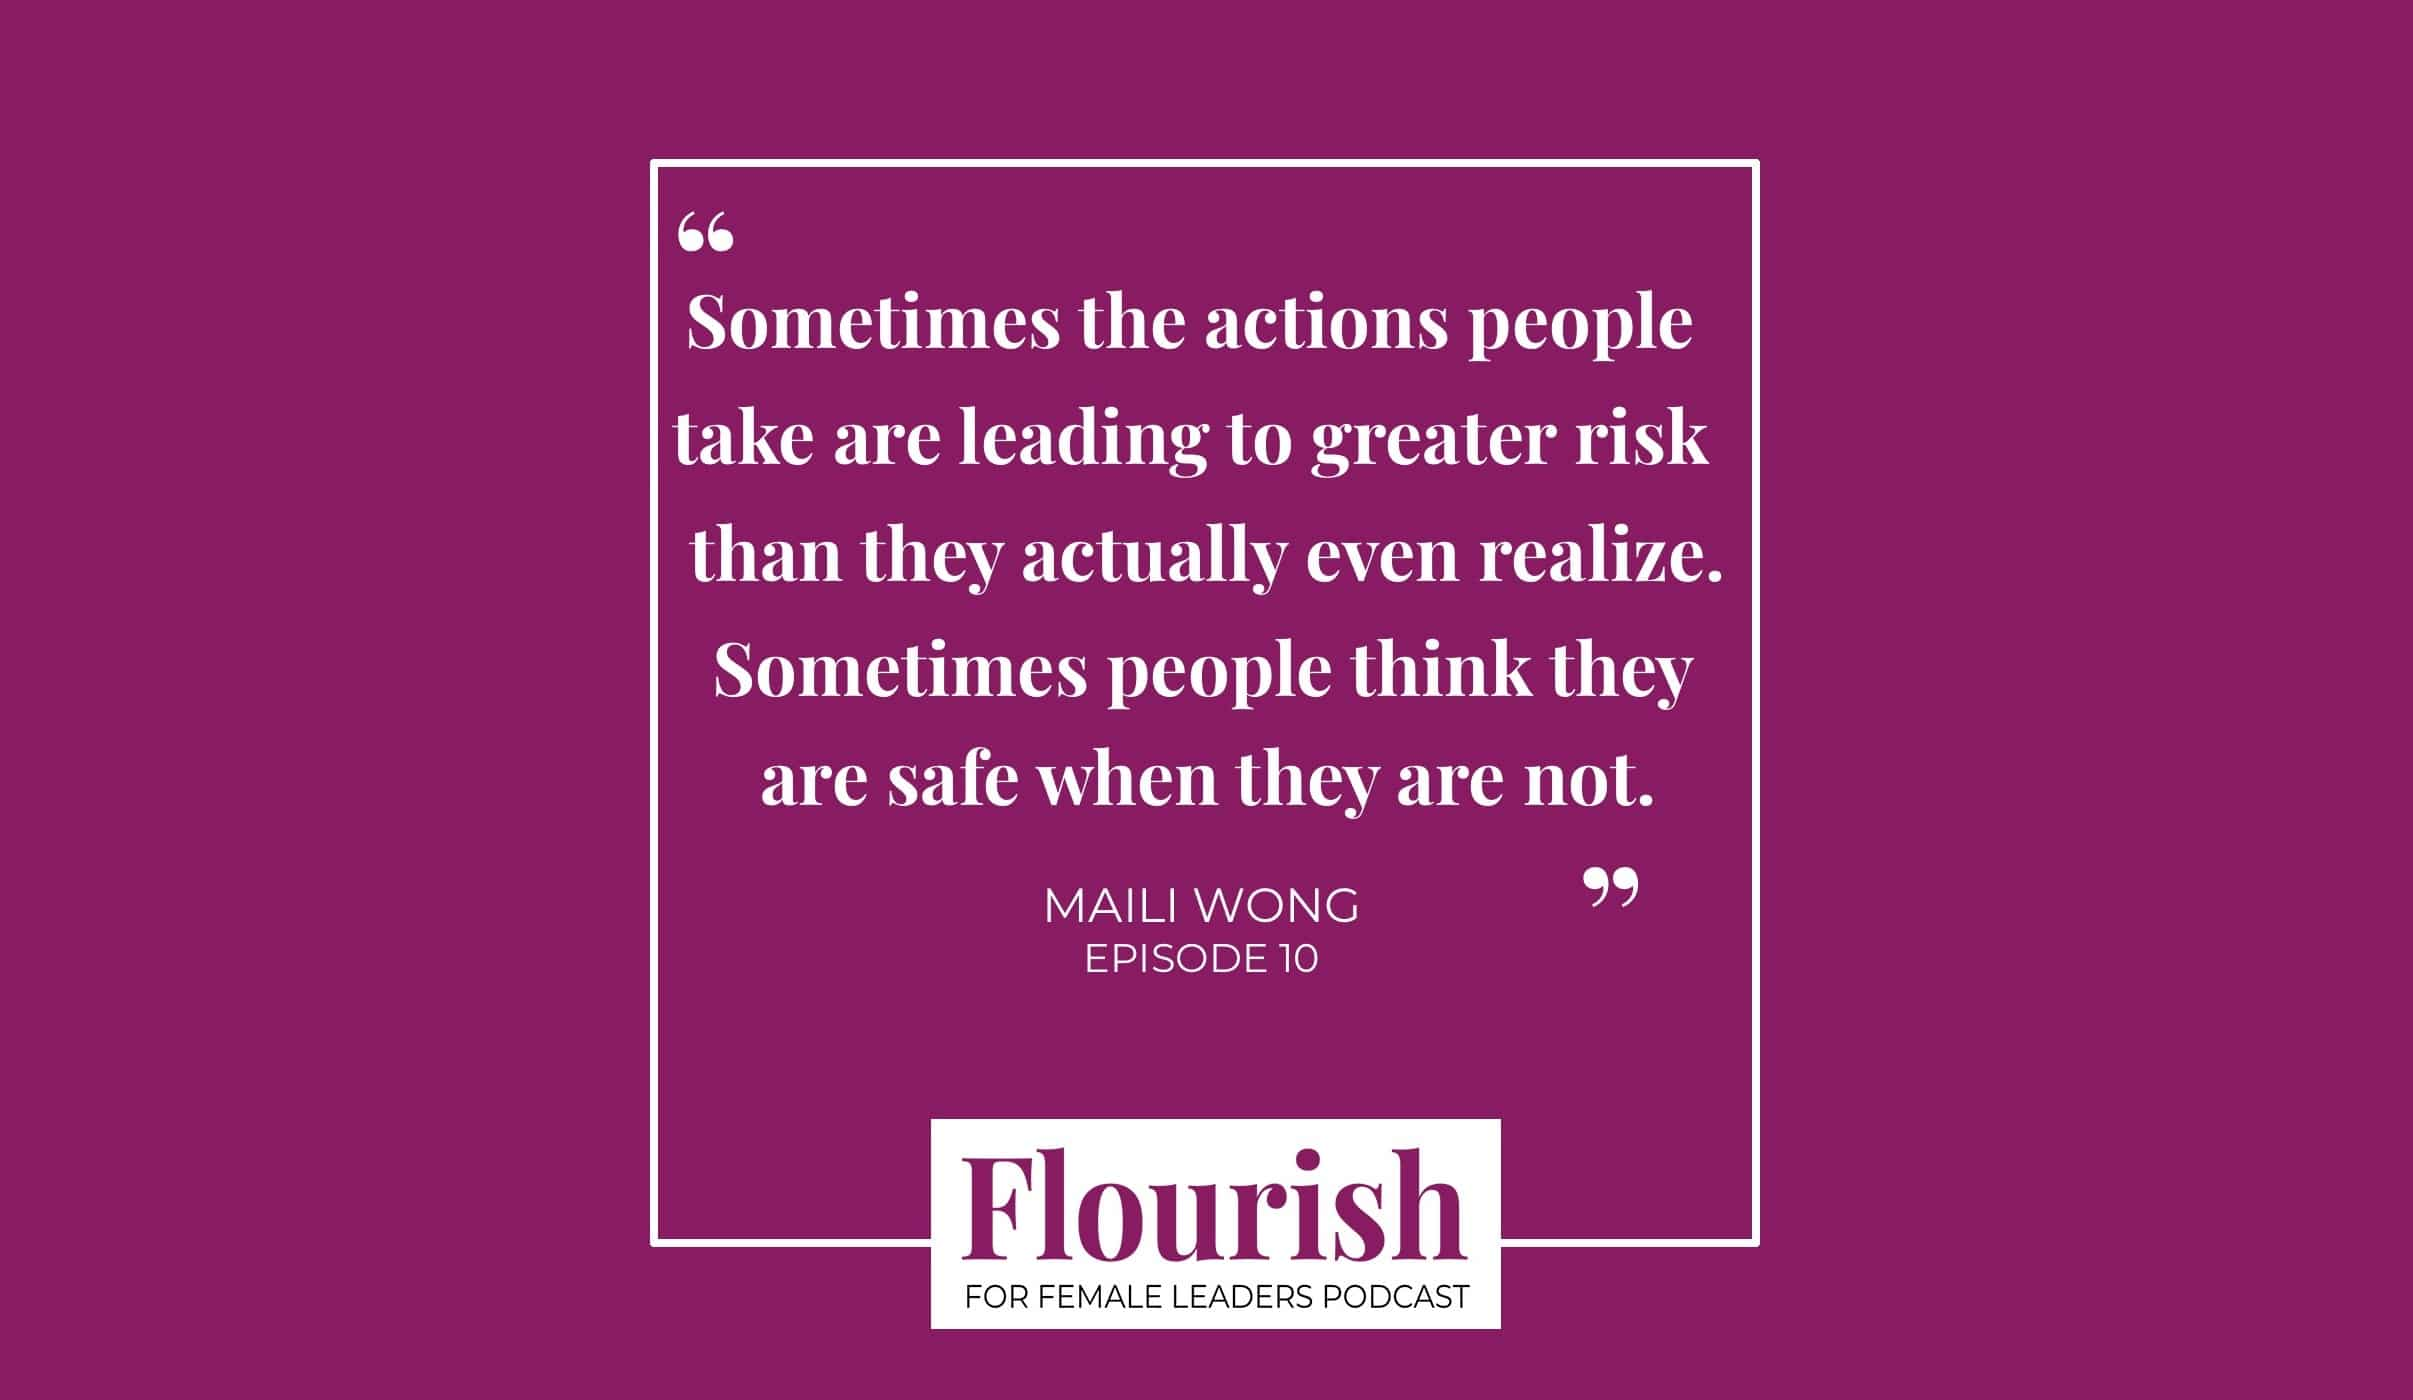 Flourish For Female Leaders Podcast: How to Create a Work-Optional Life